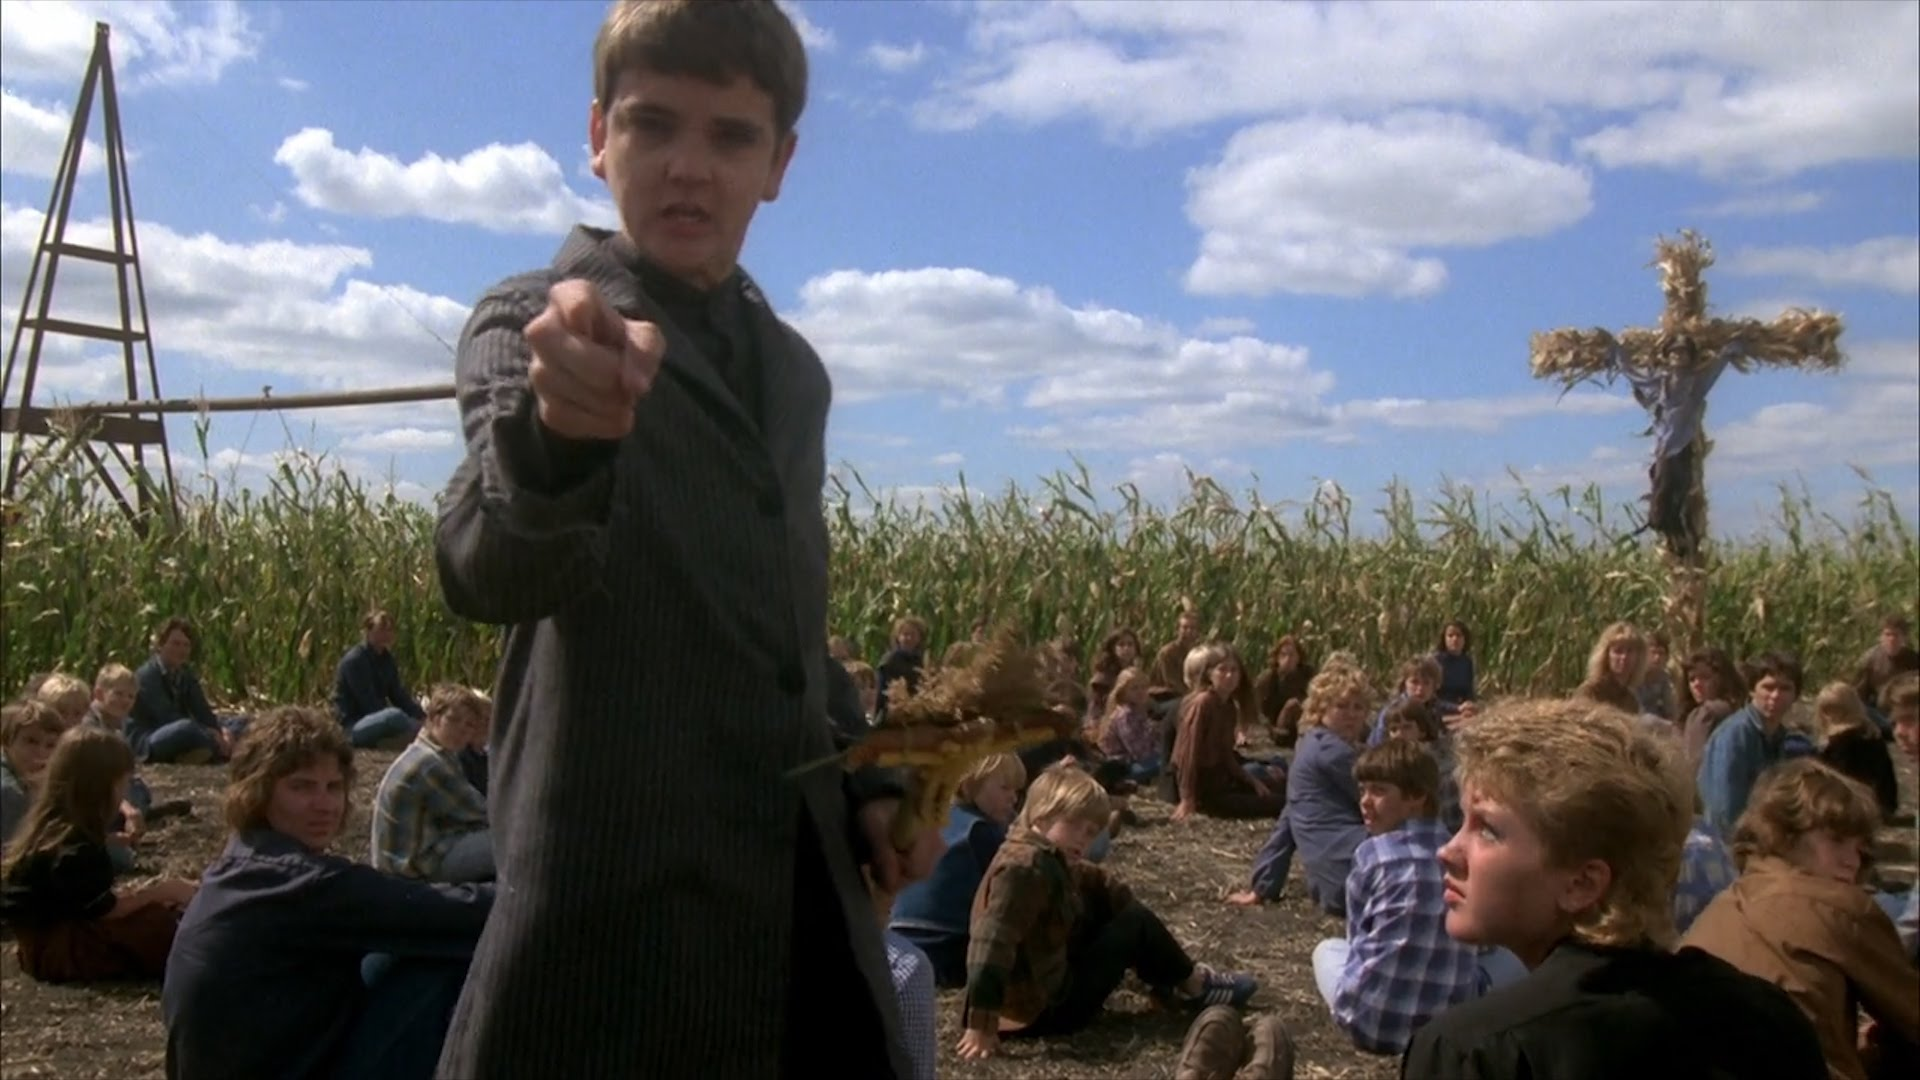 6. Children of the Corn (1984)